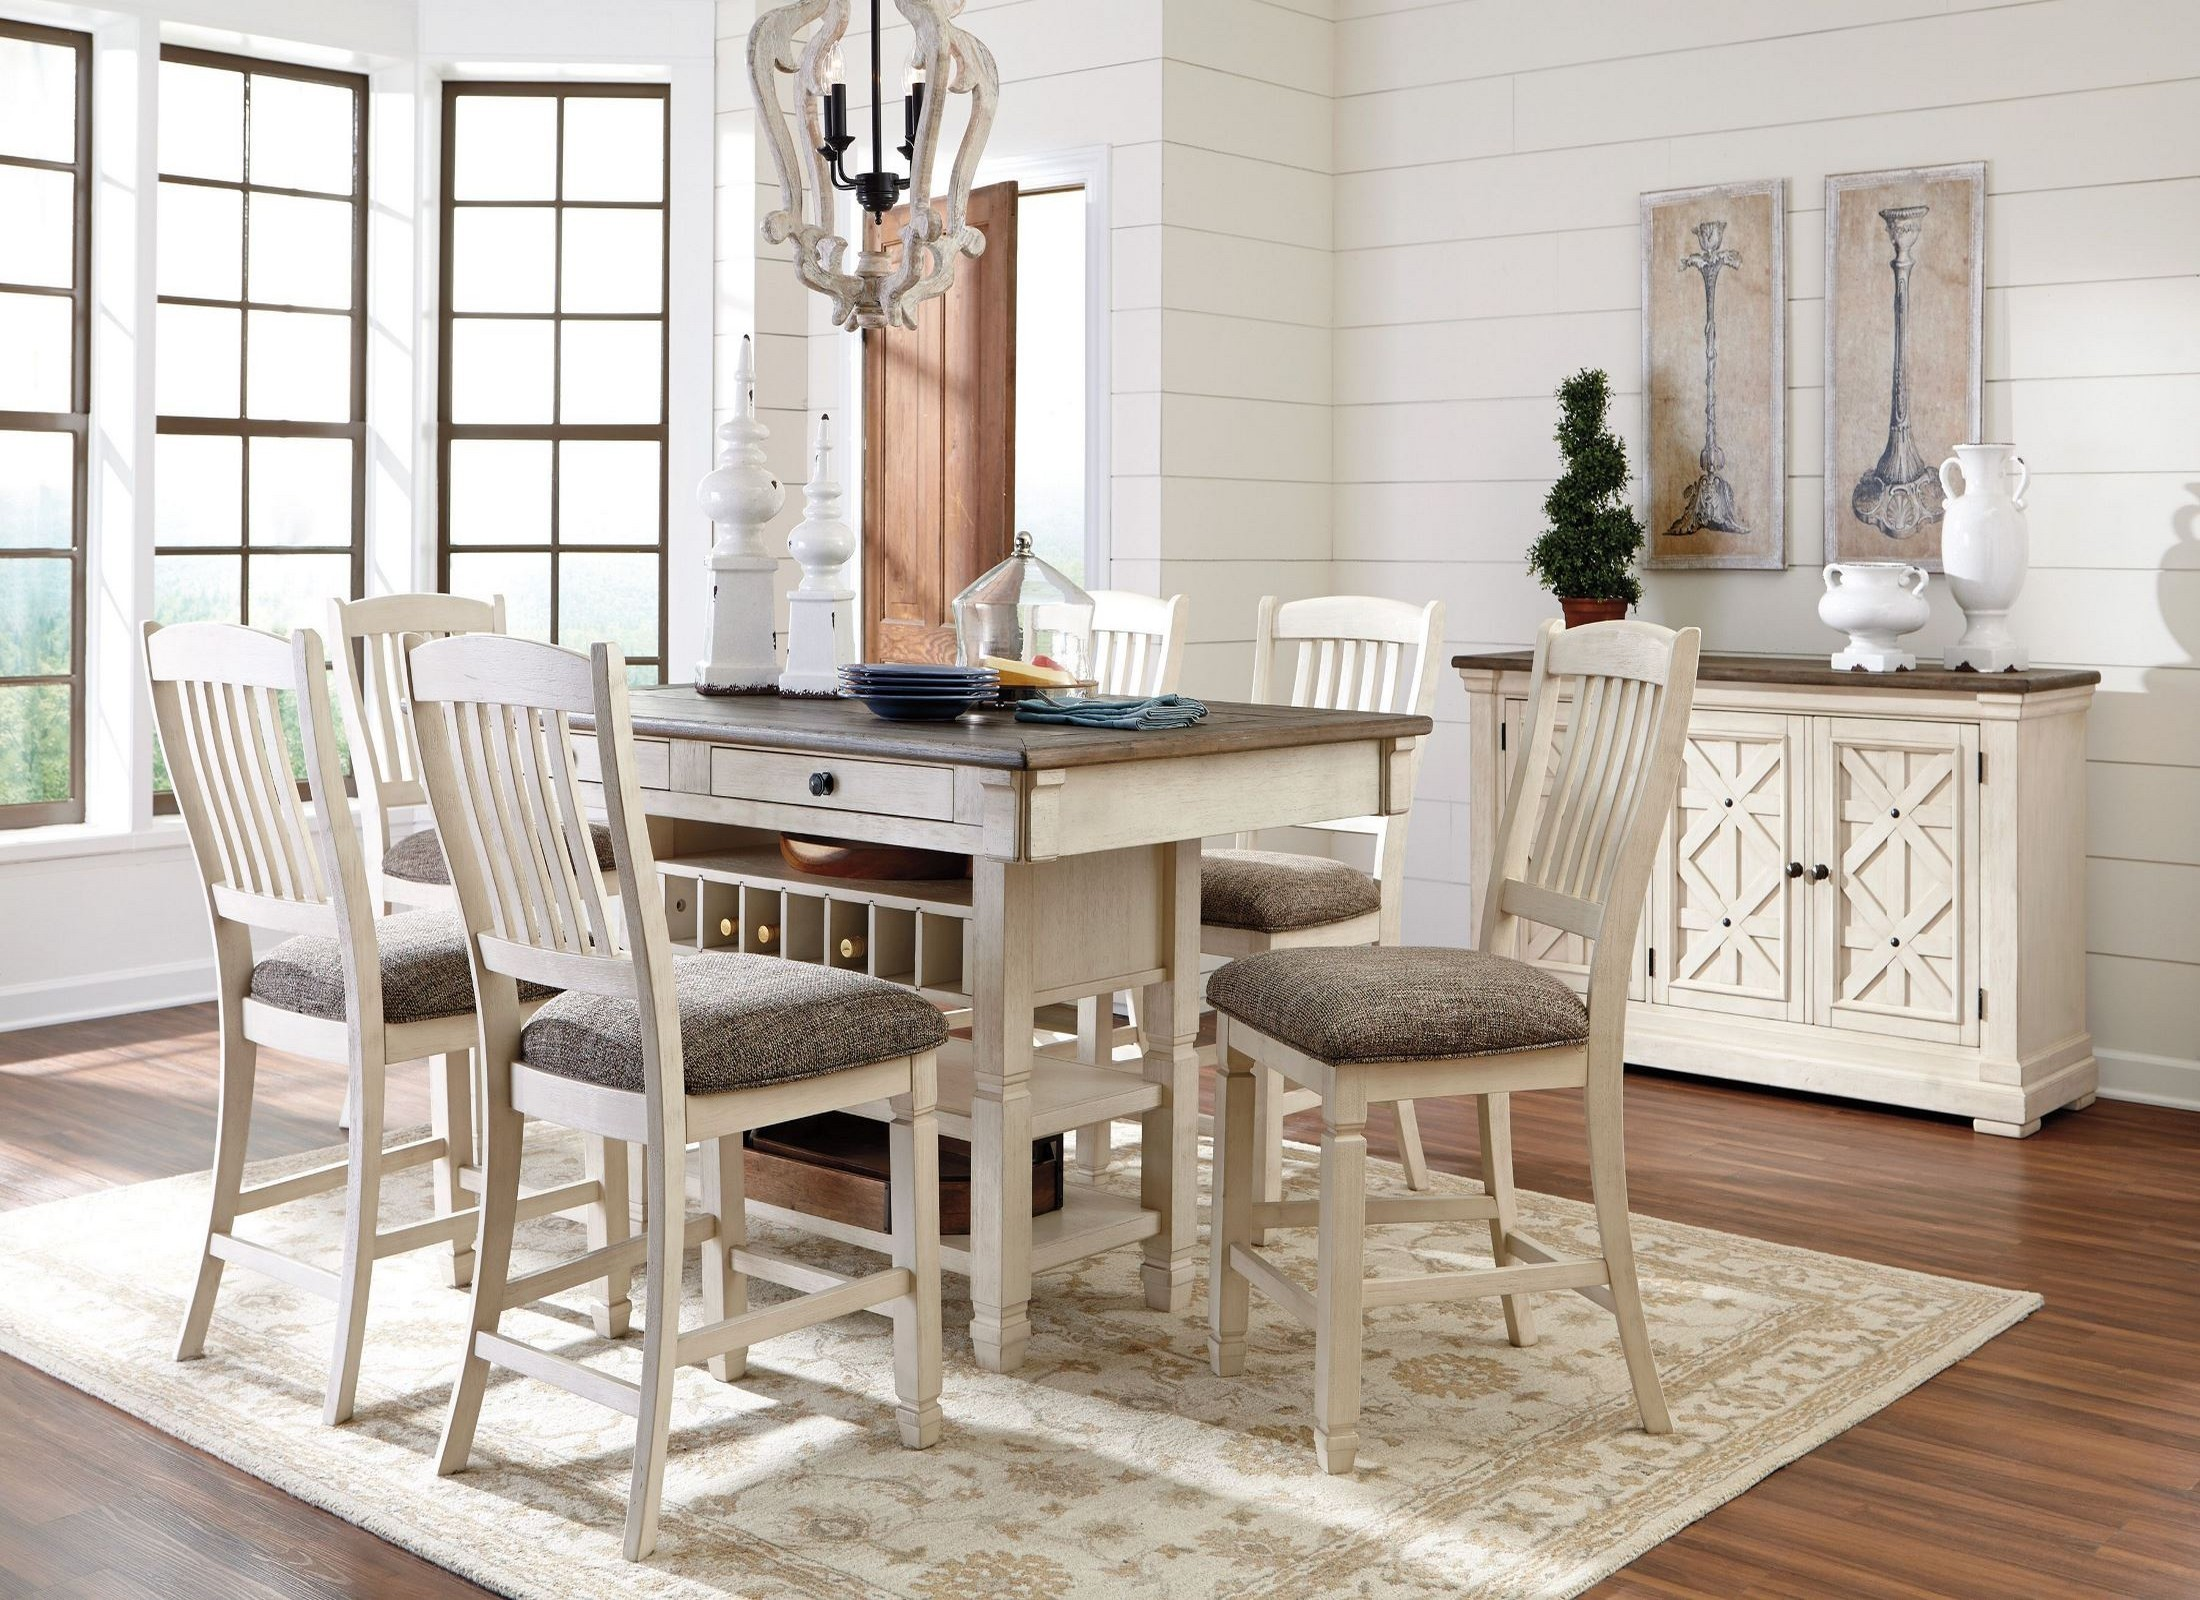 dining room counter height tables | Bolanburg White and Gray Rectangular Counter Height Dining ...